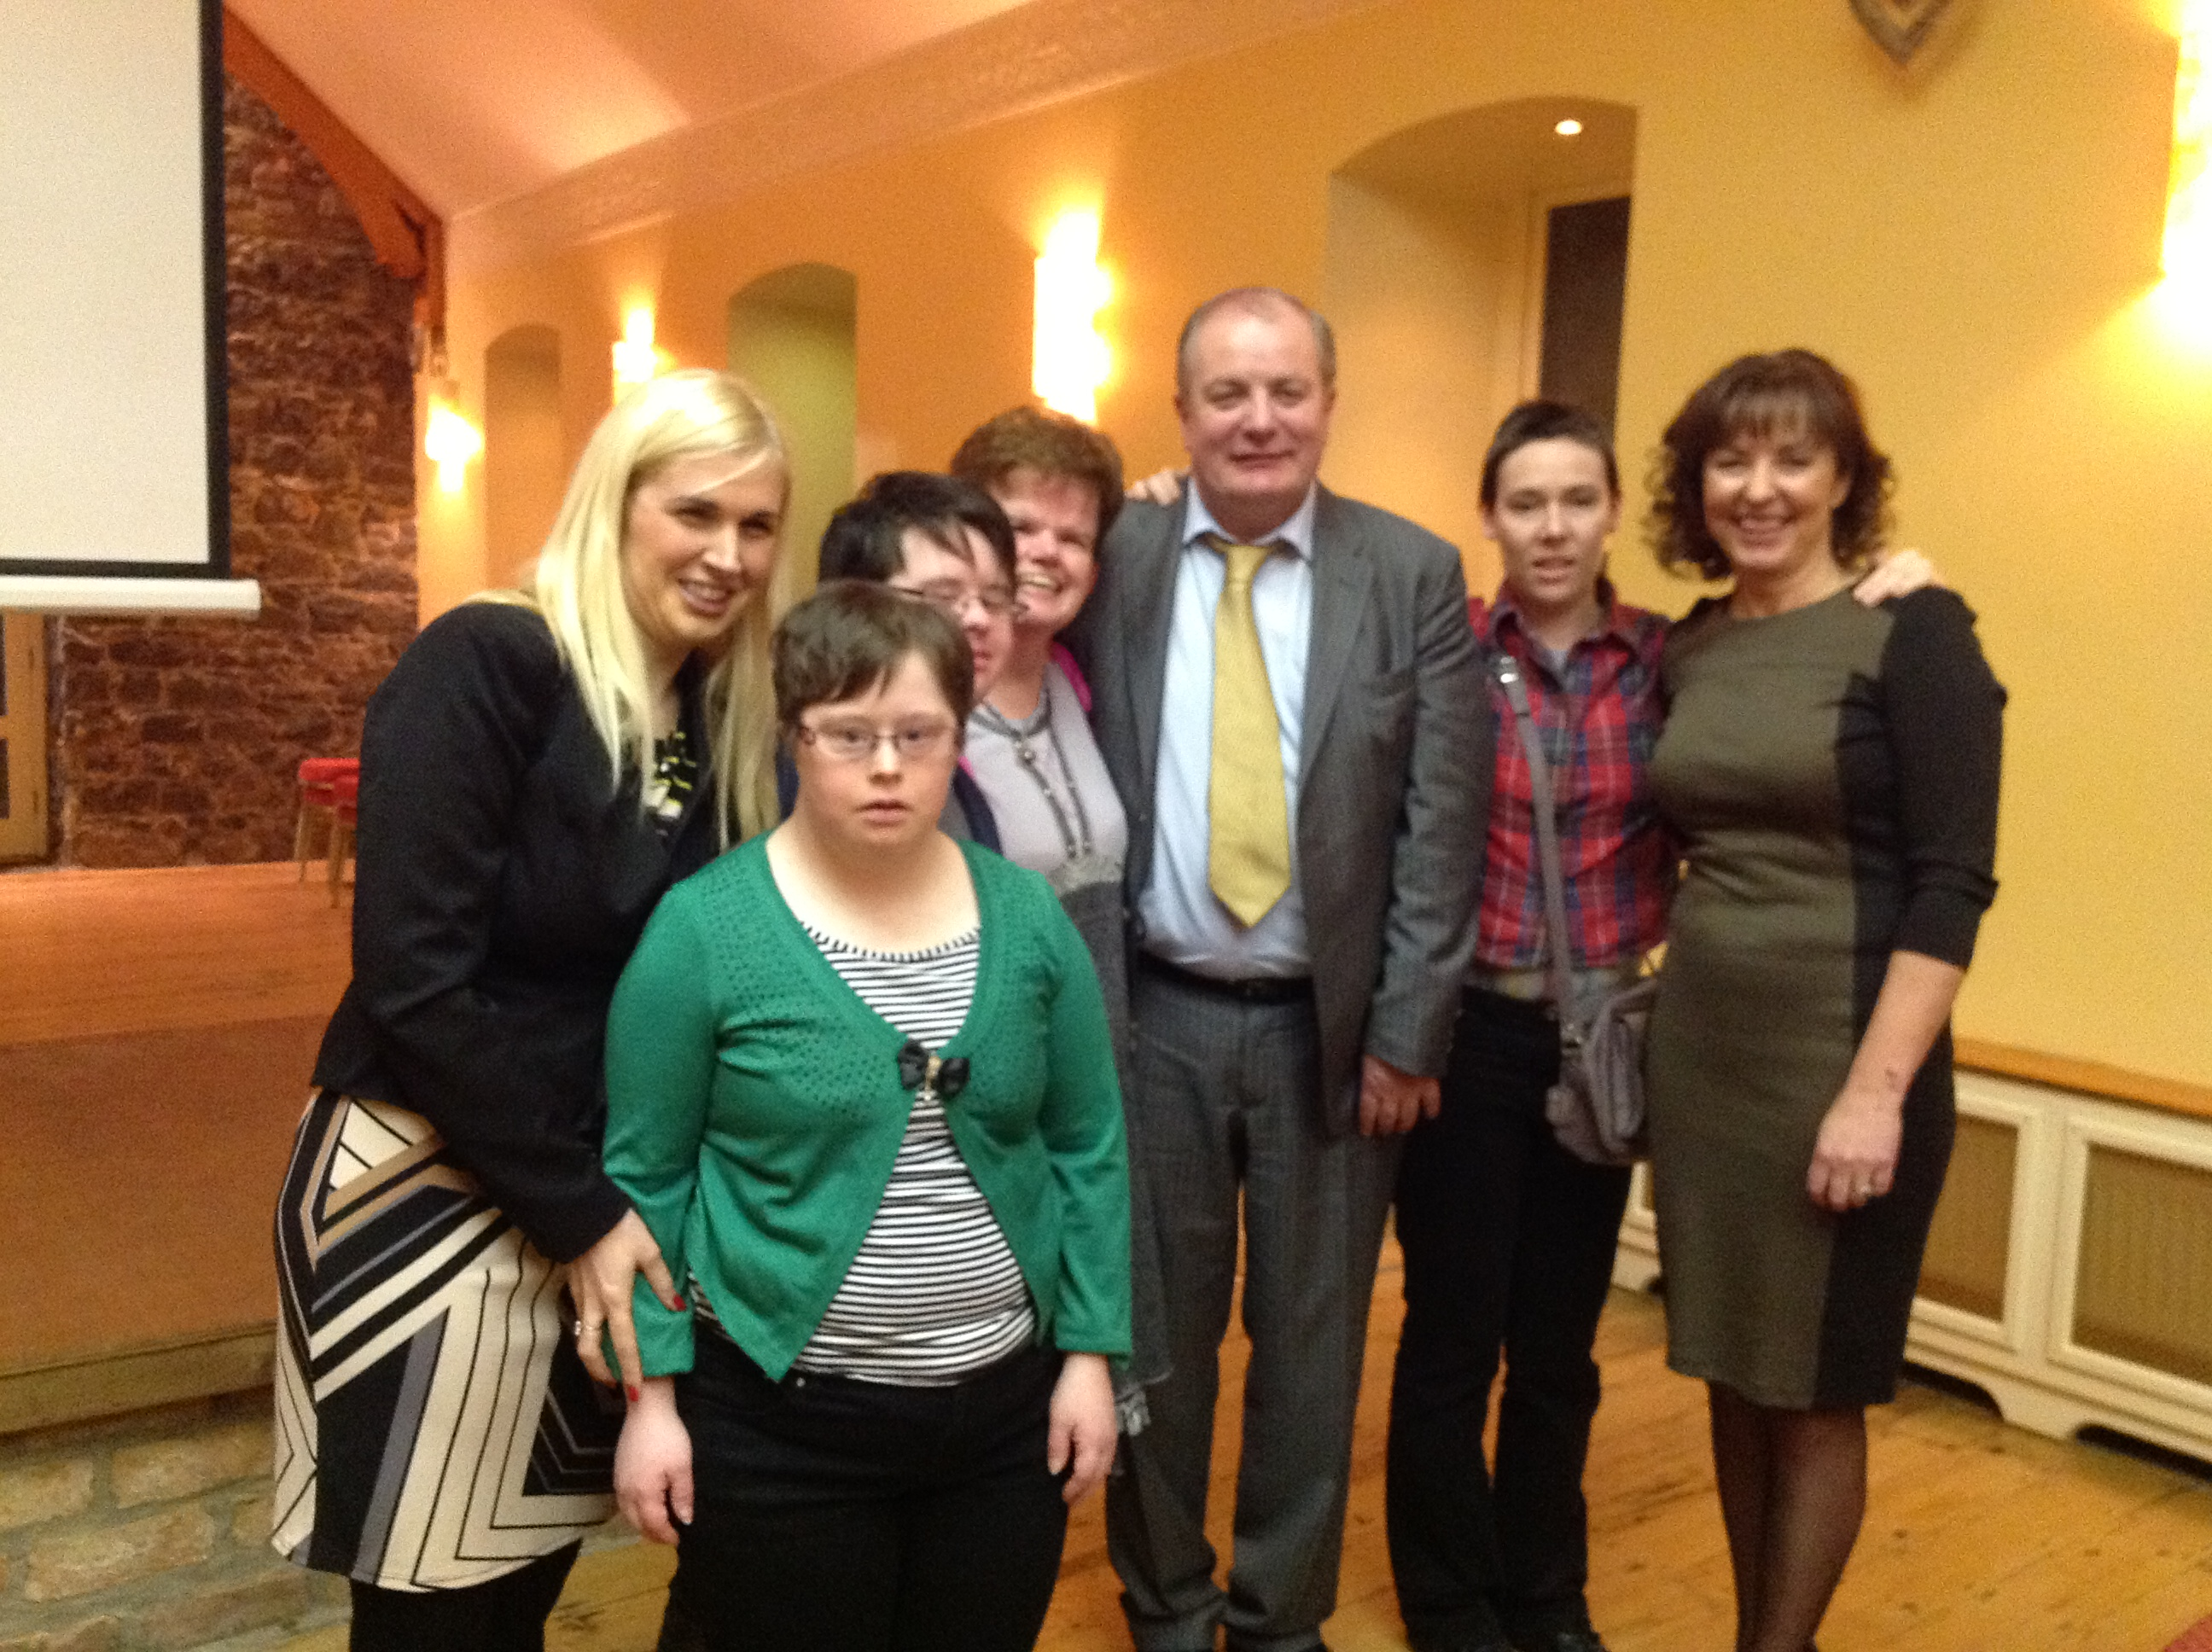 Sinead Kane, Gavin Duffy, Orlaith Carmody and participants